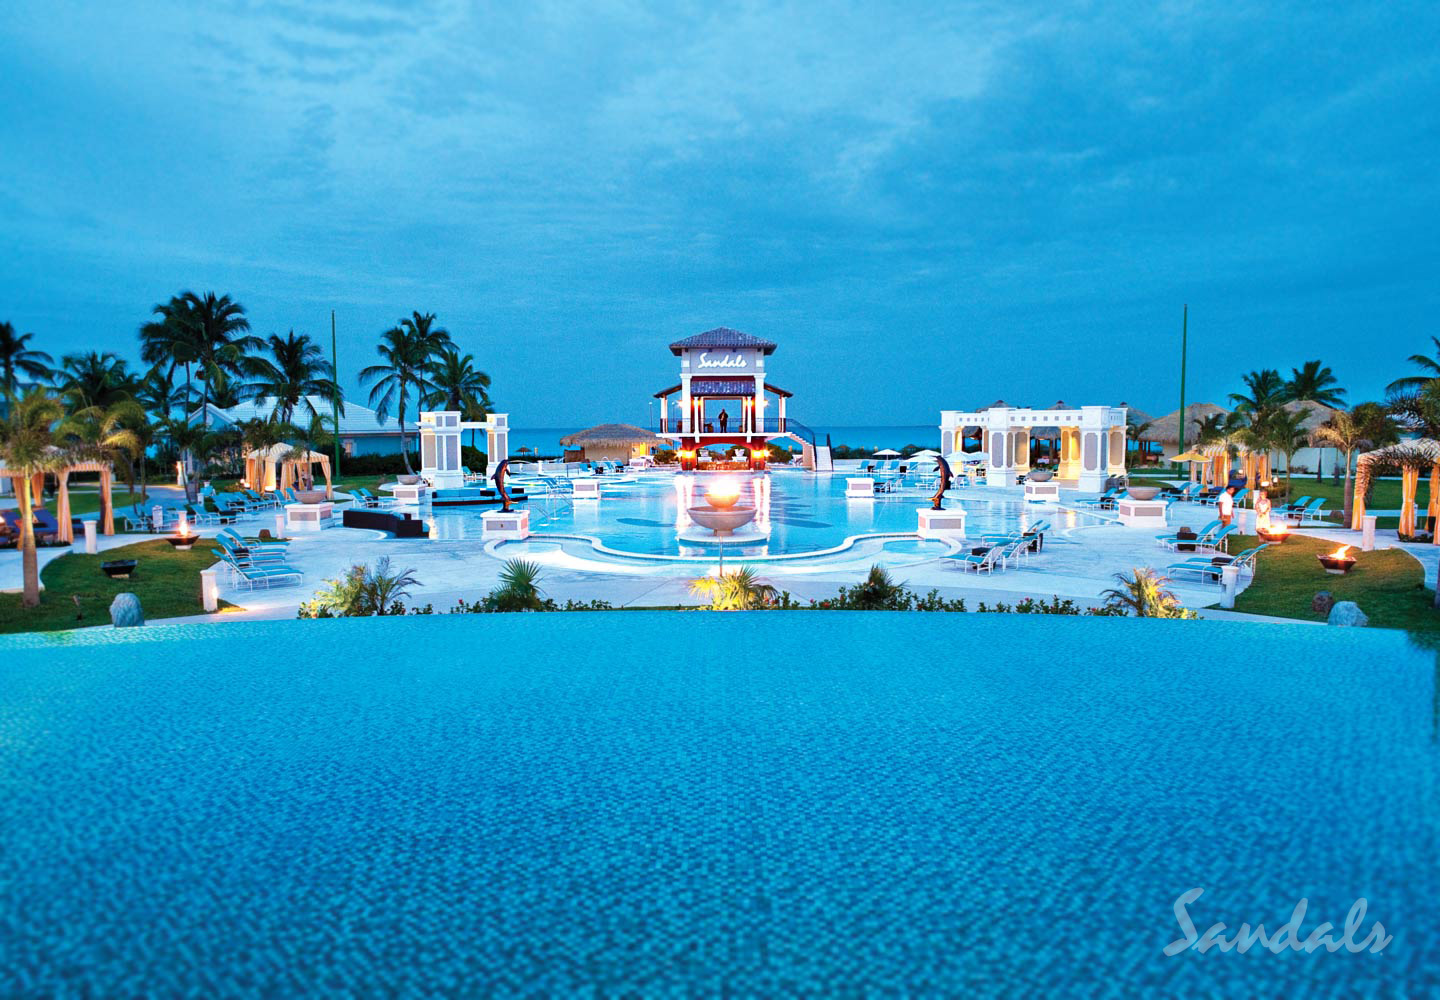 Travel Agency All-Inclusive Resort Sandals Emerald Bay 046